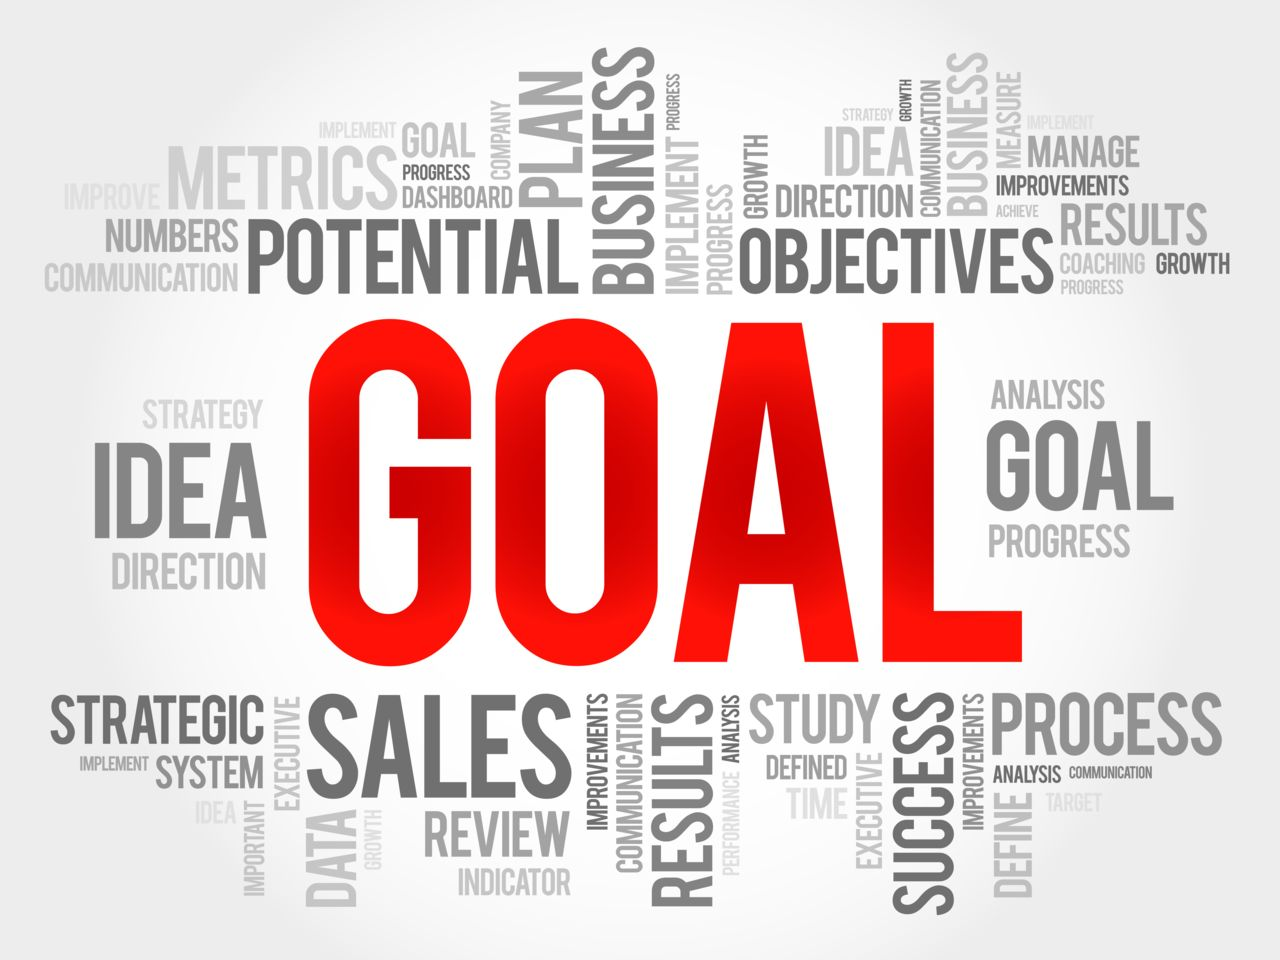 Goals, Vision, Strategy